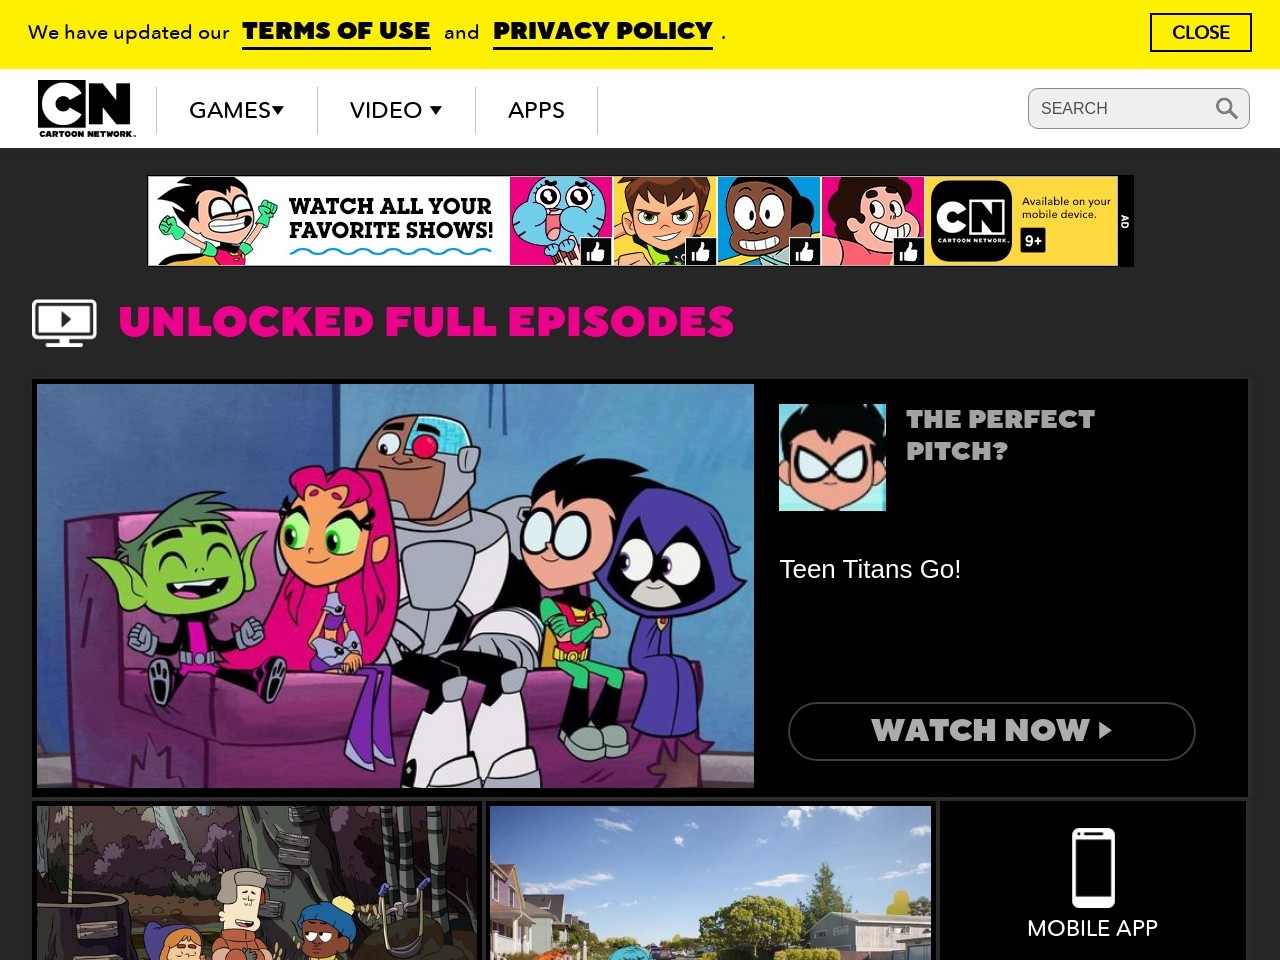 http://www.cartoonnetwork.com/promos/201411_hasbroholiday/index.html